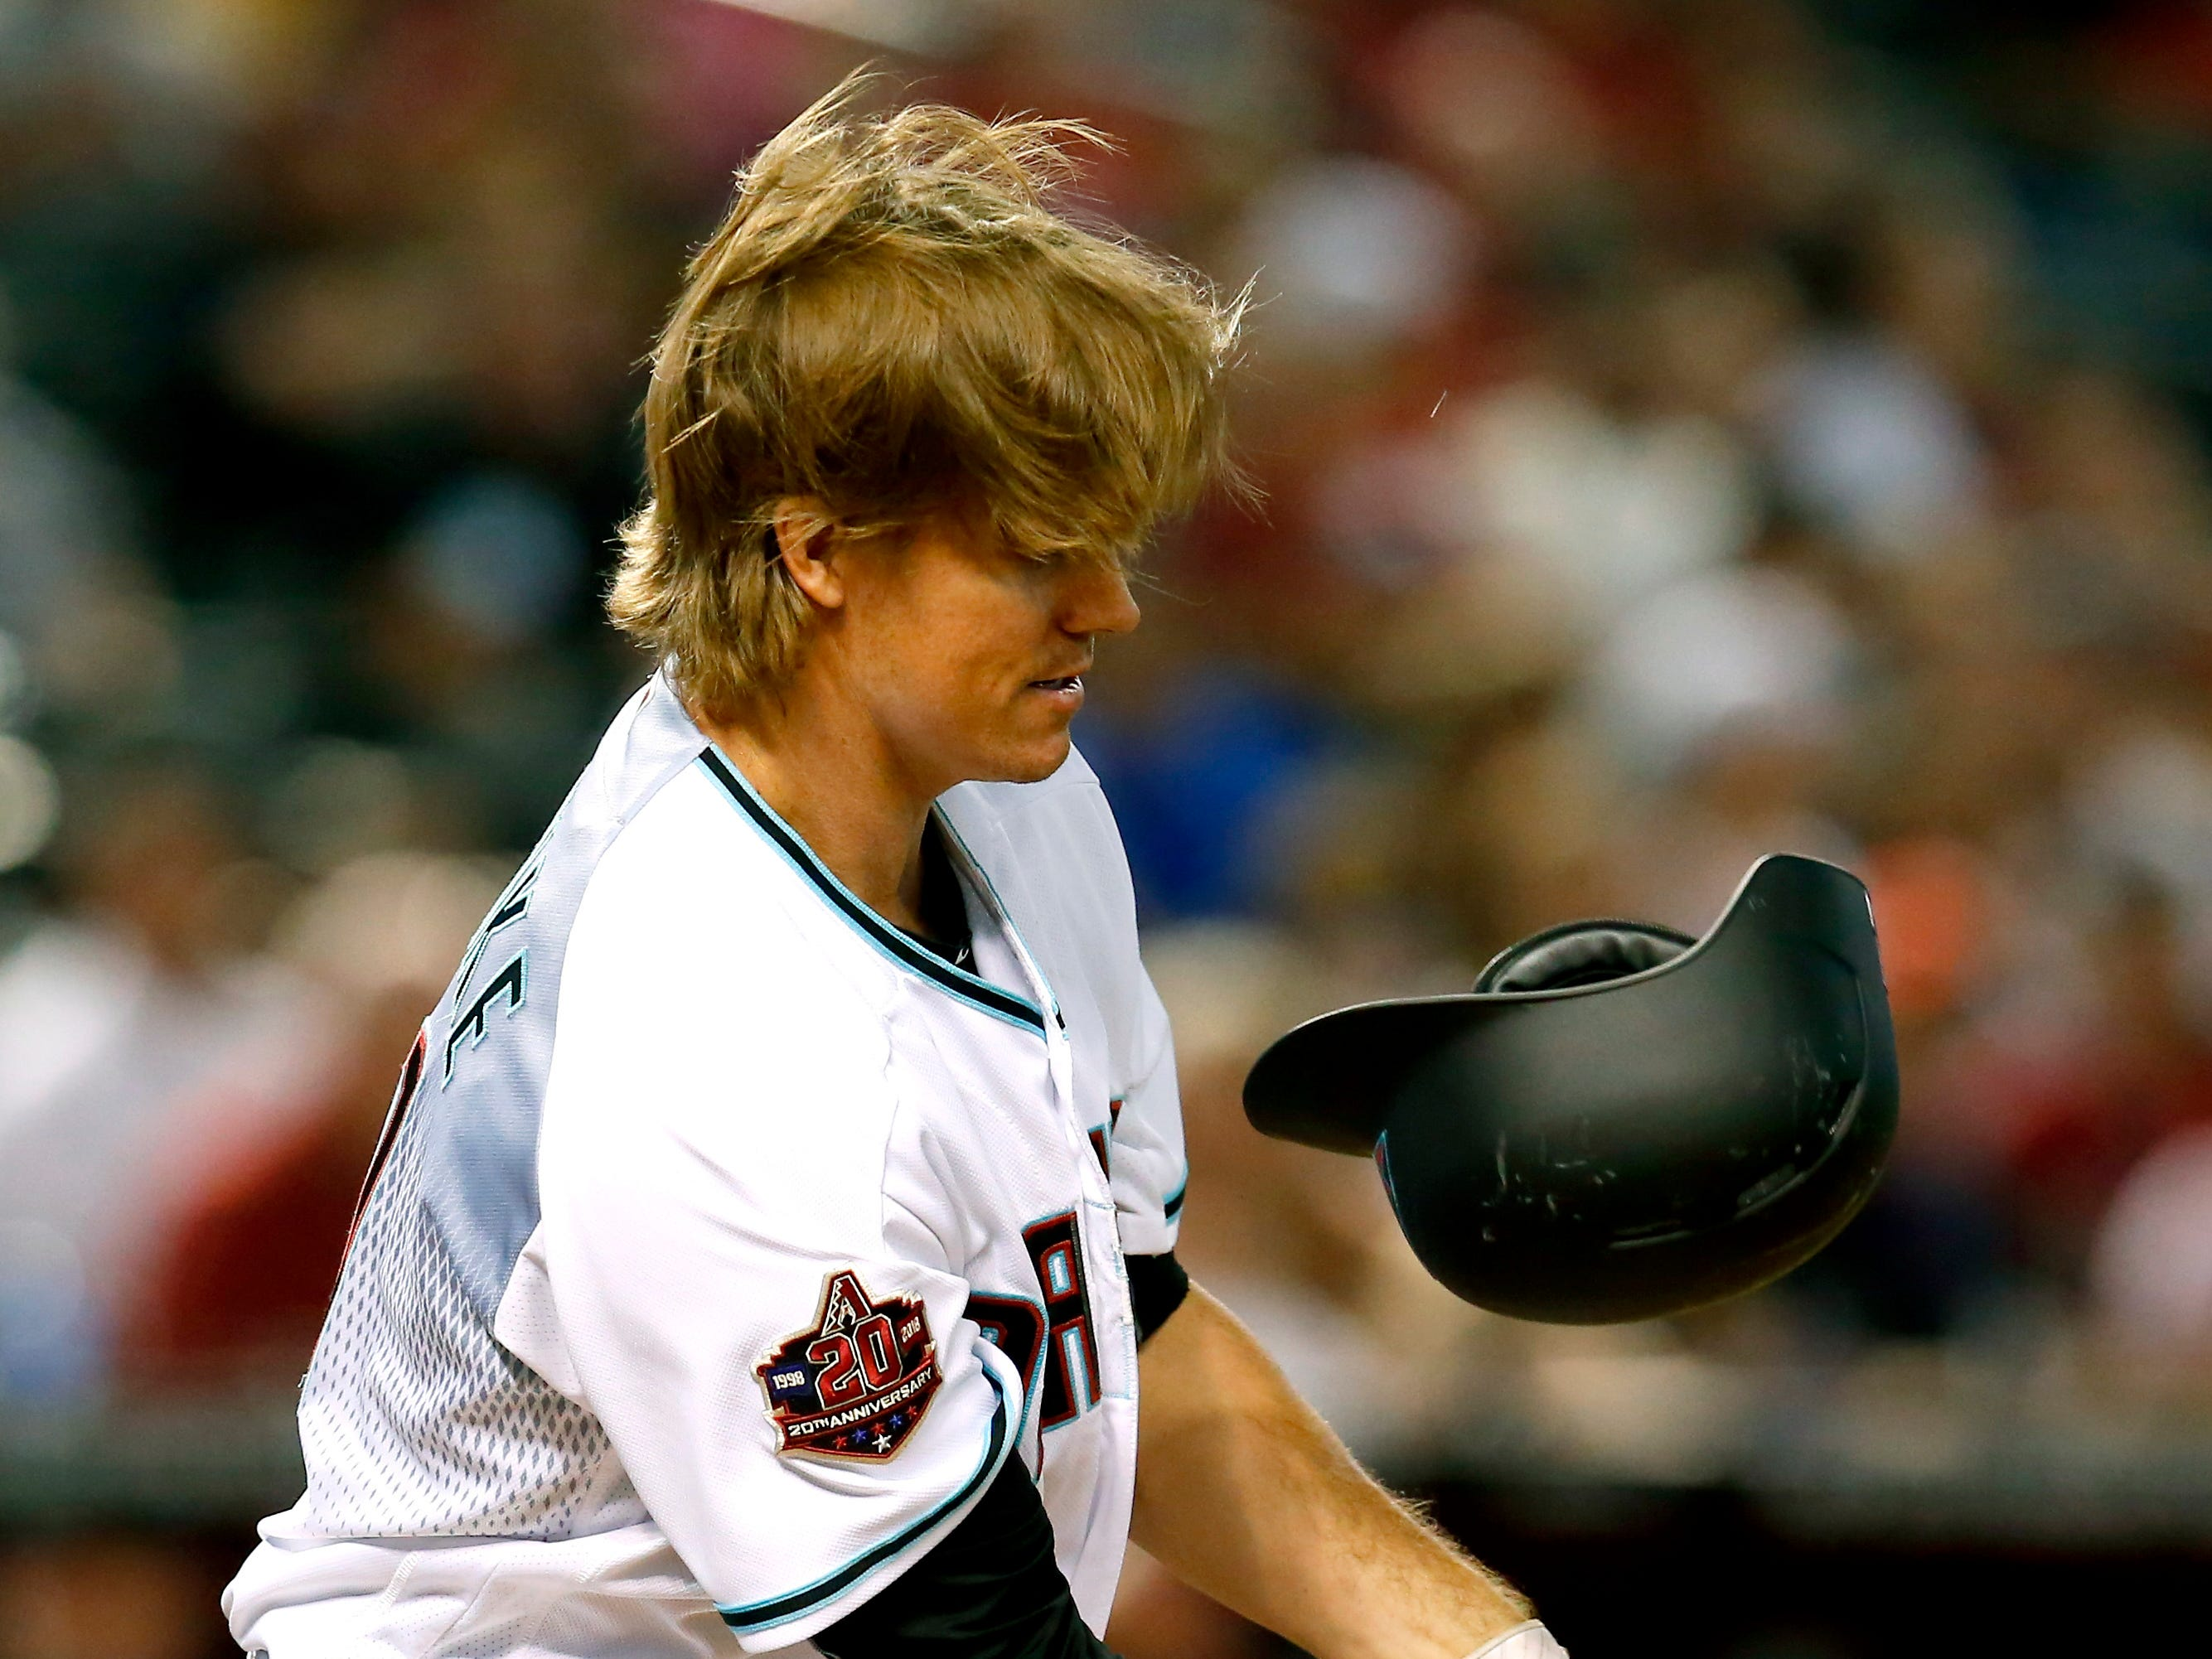 Arizona Diamondbacks' Zack Greinke loses his helmet while batting during the third inning of the team's baseball game against the Philadelphia Phillies, Tuesday, Aug. 7, 2018, in Phoenix.